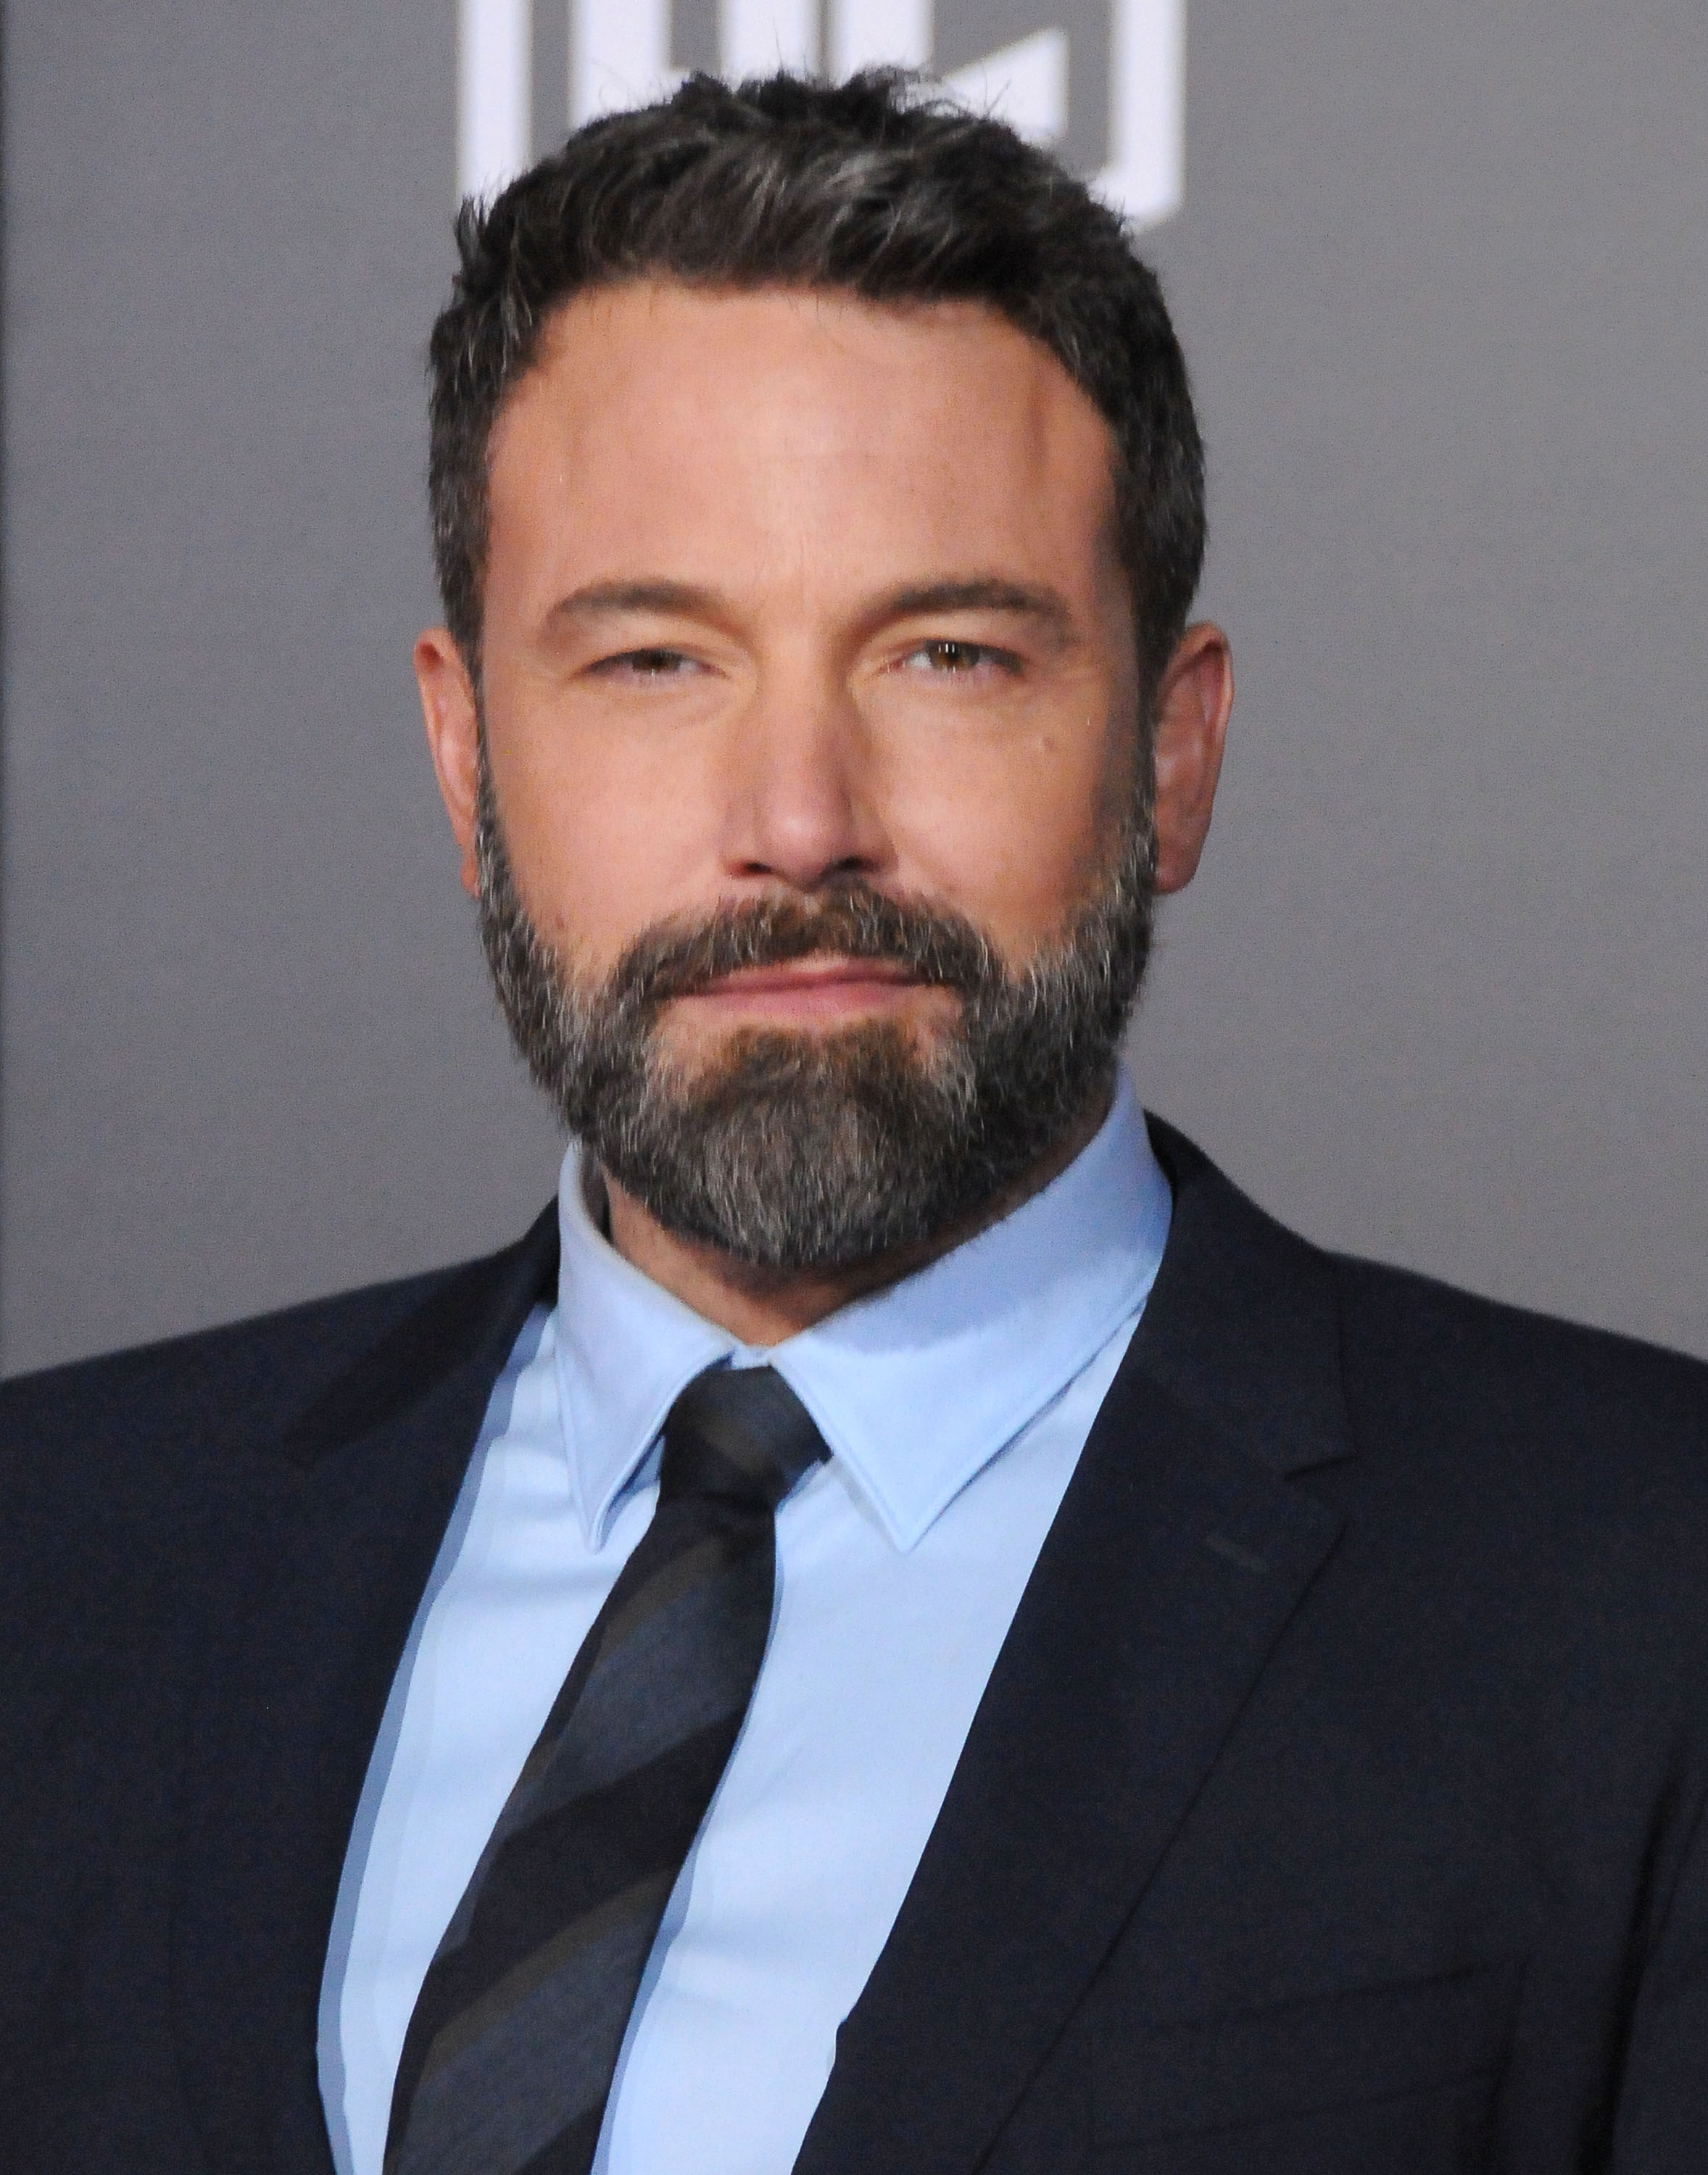 Ben Affleck attends the premiere of Warner Bros. Pictures' 'Justice League' at Dolby Theatre on November 13, 2017.   Source: Getty Images